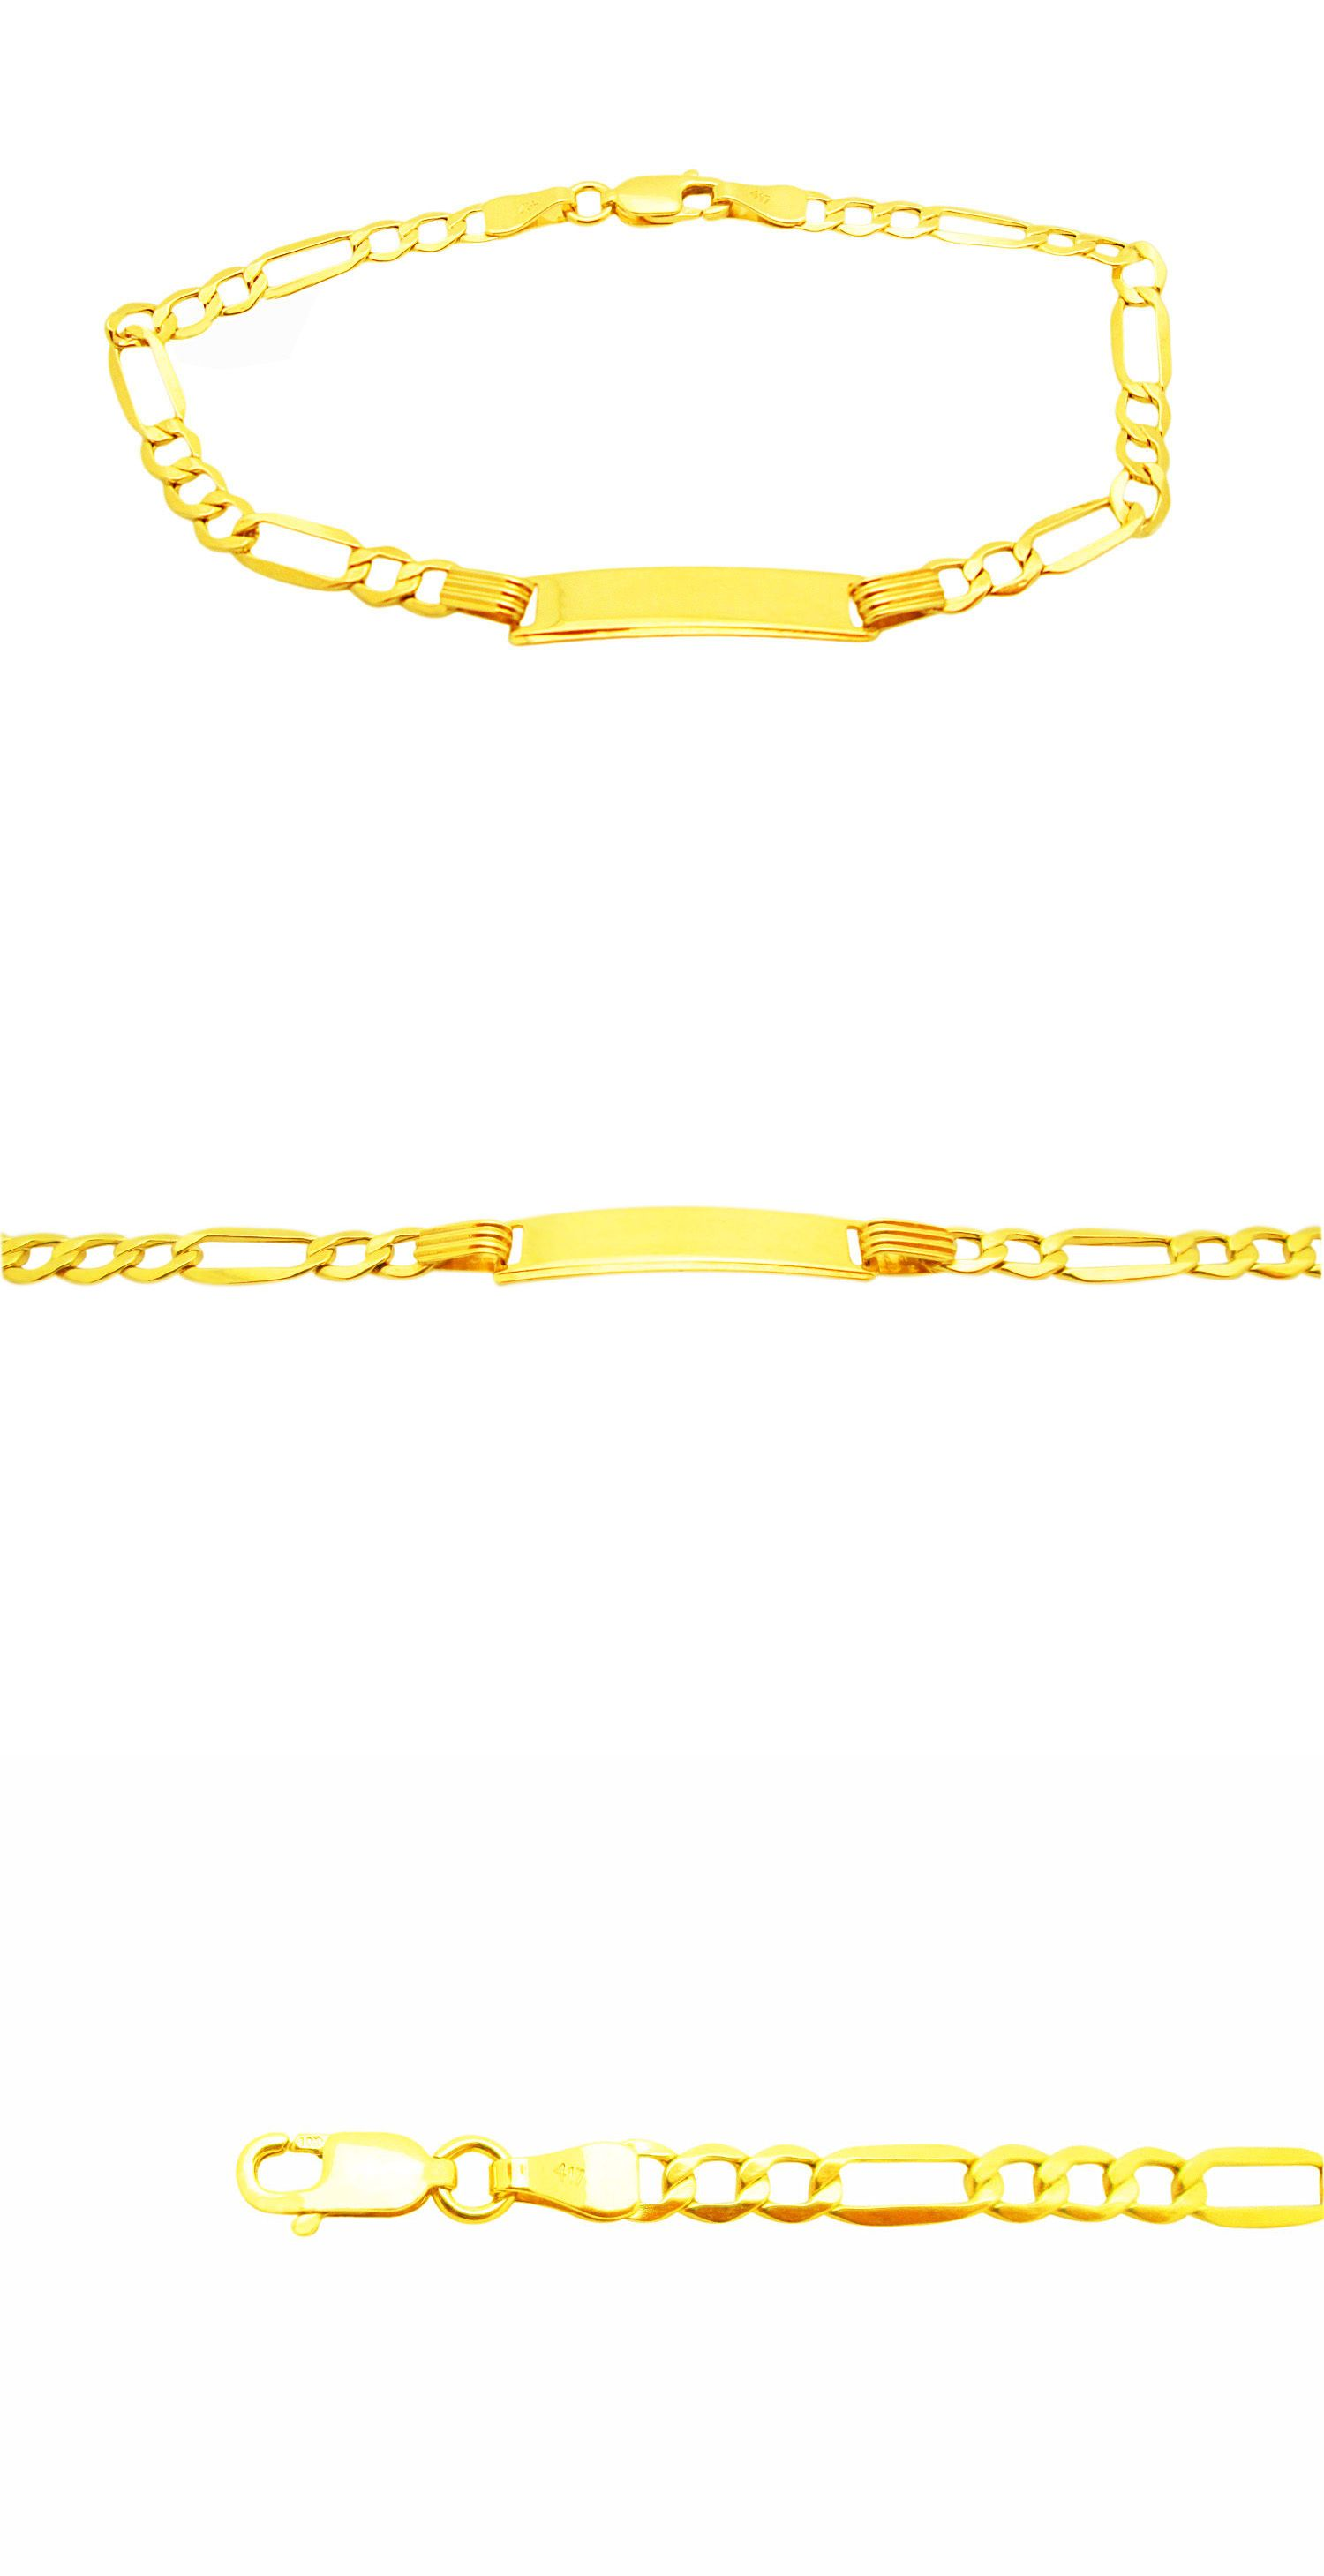 Bracelets babies toddlers k yellow gold mm figaro link